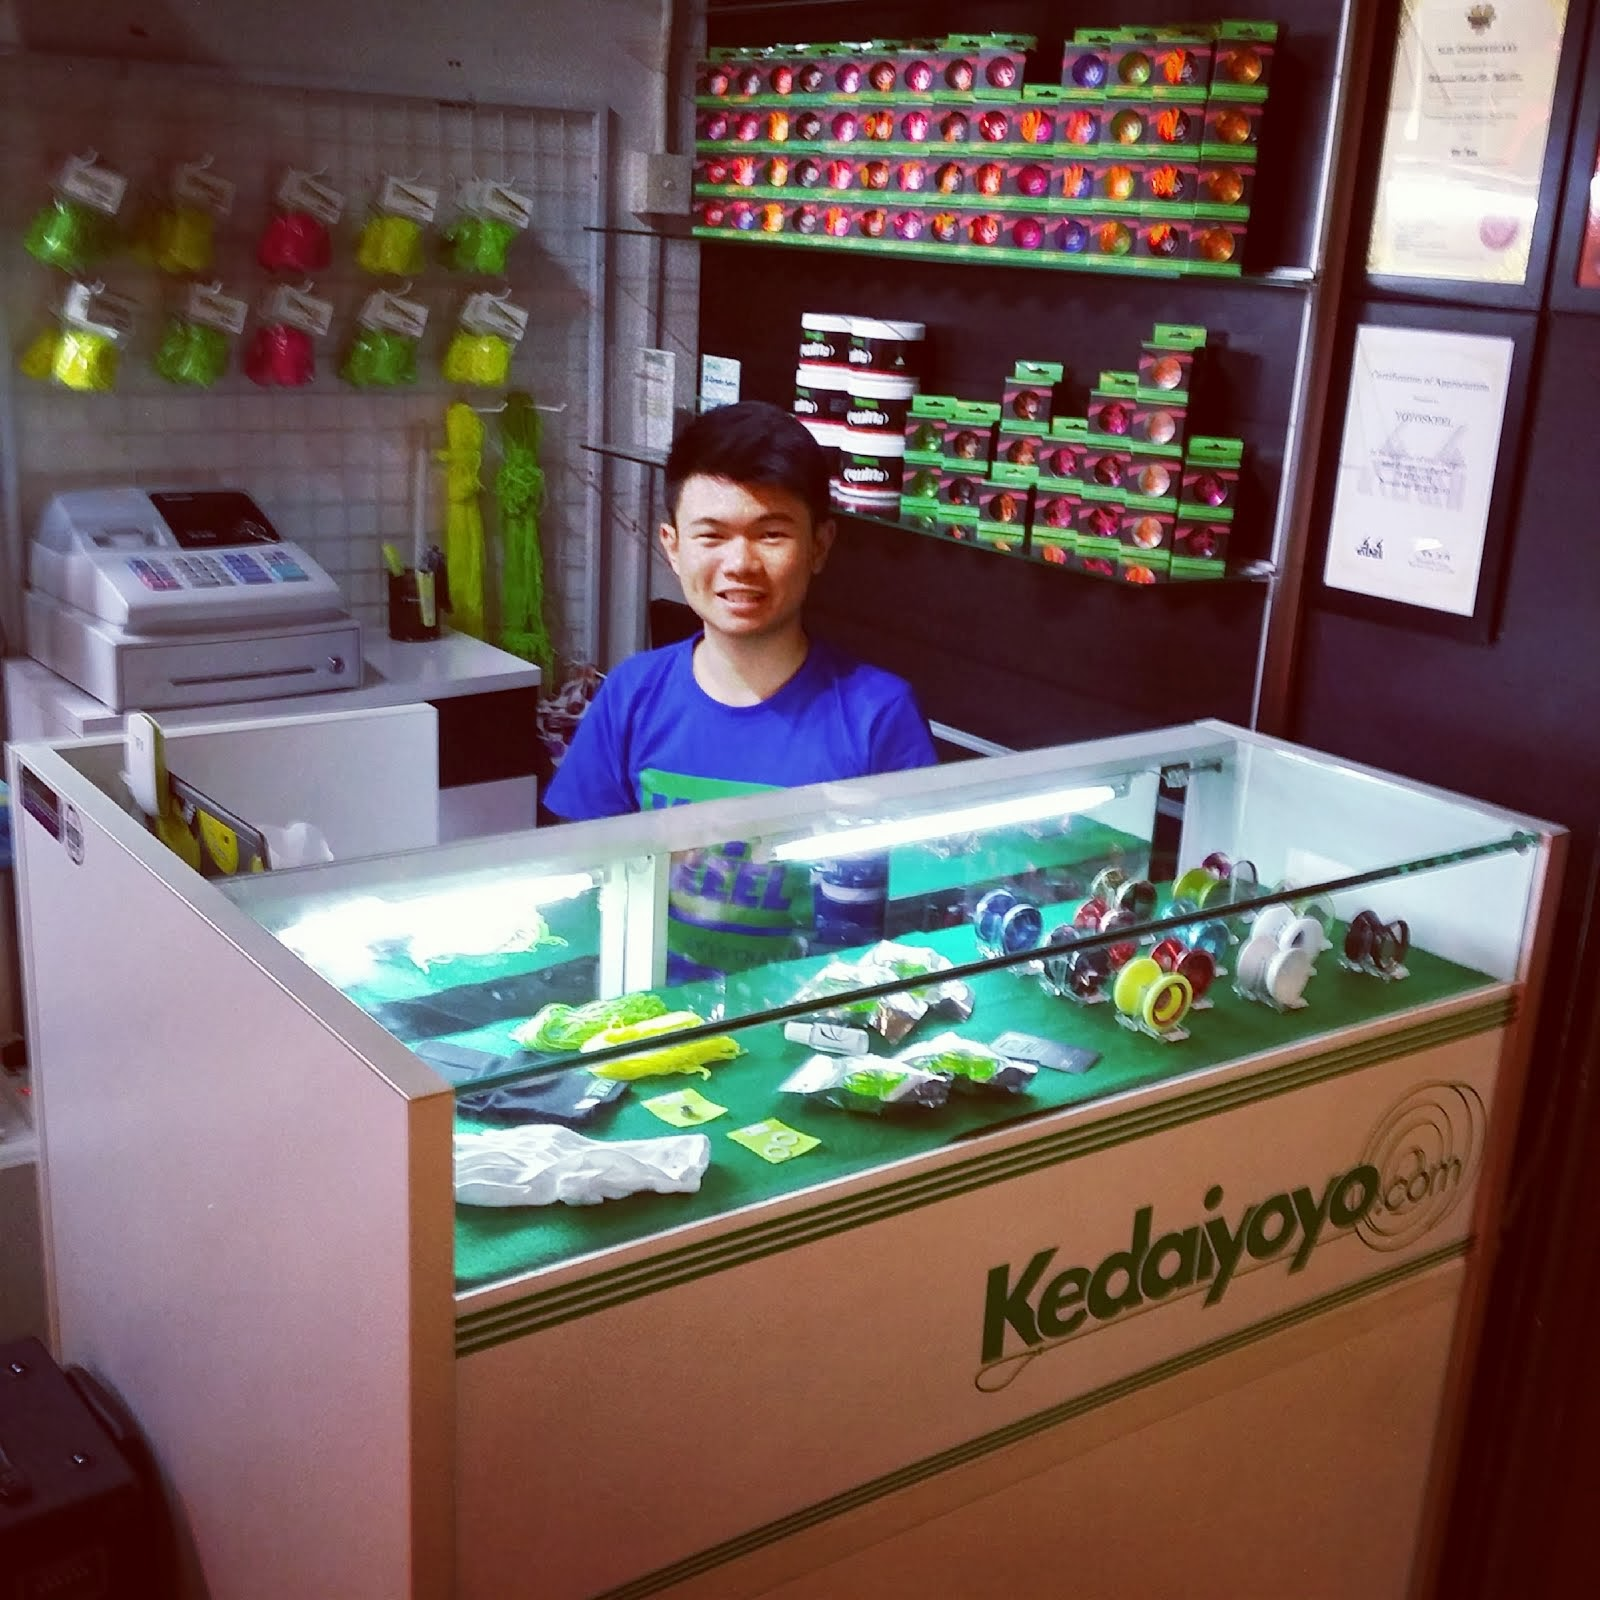 2014 NEW YOYO STORE IN KL: KEDAIYOYO